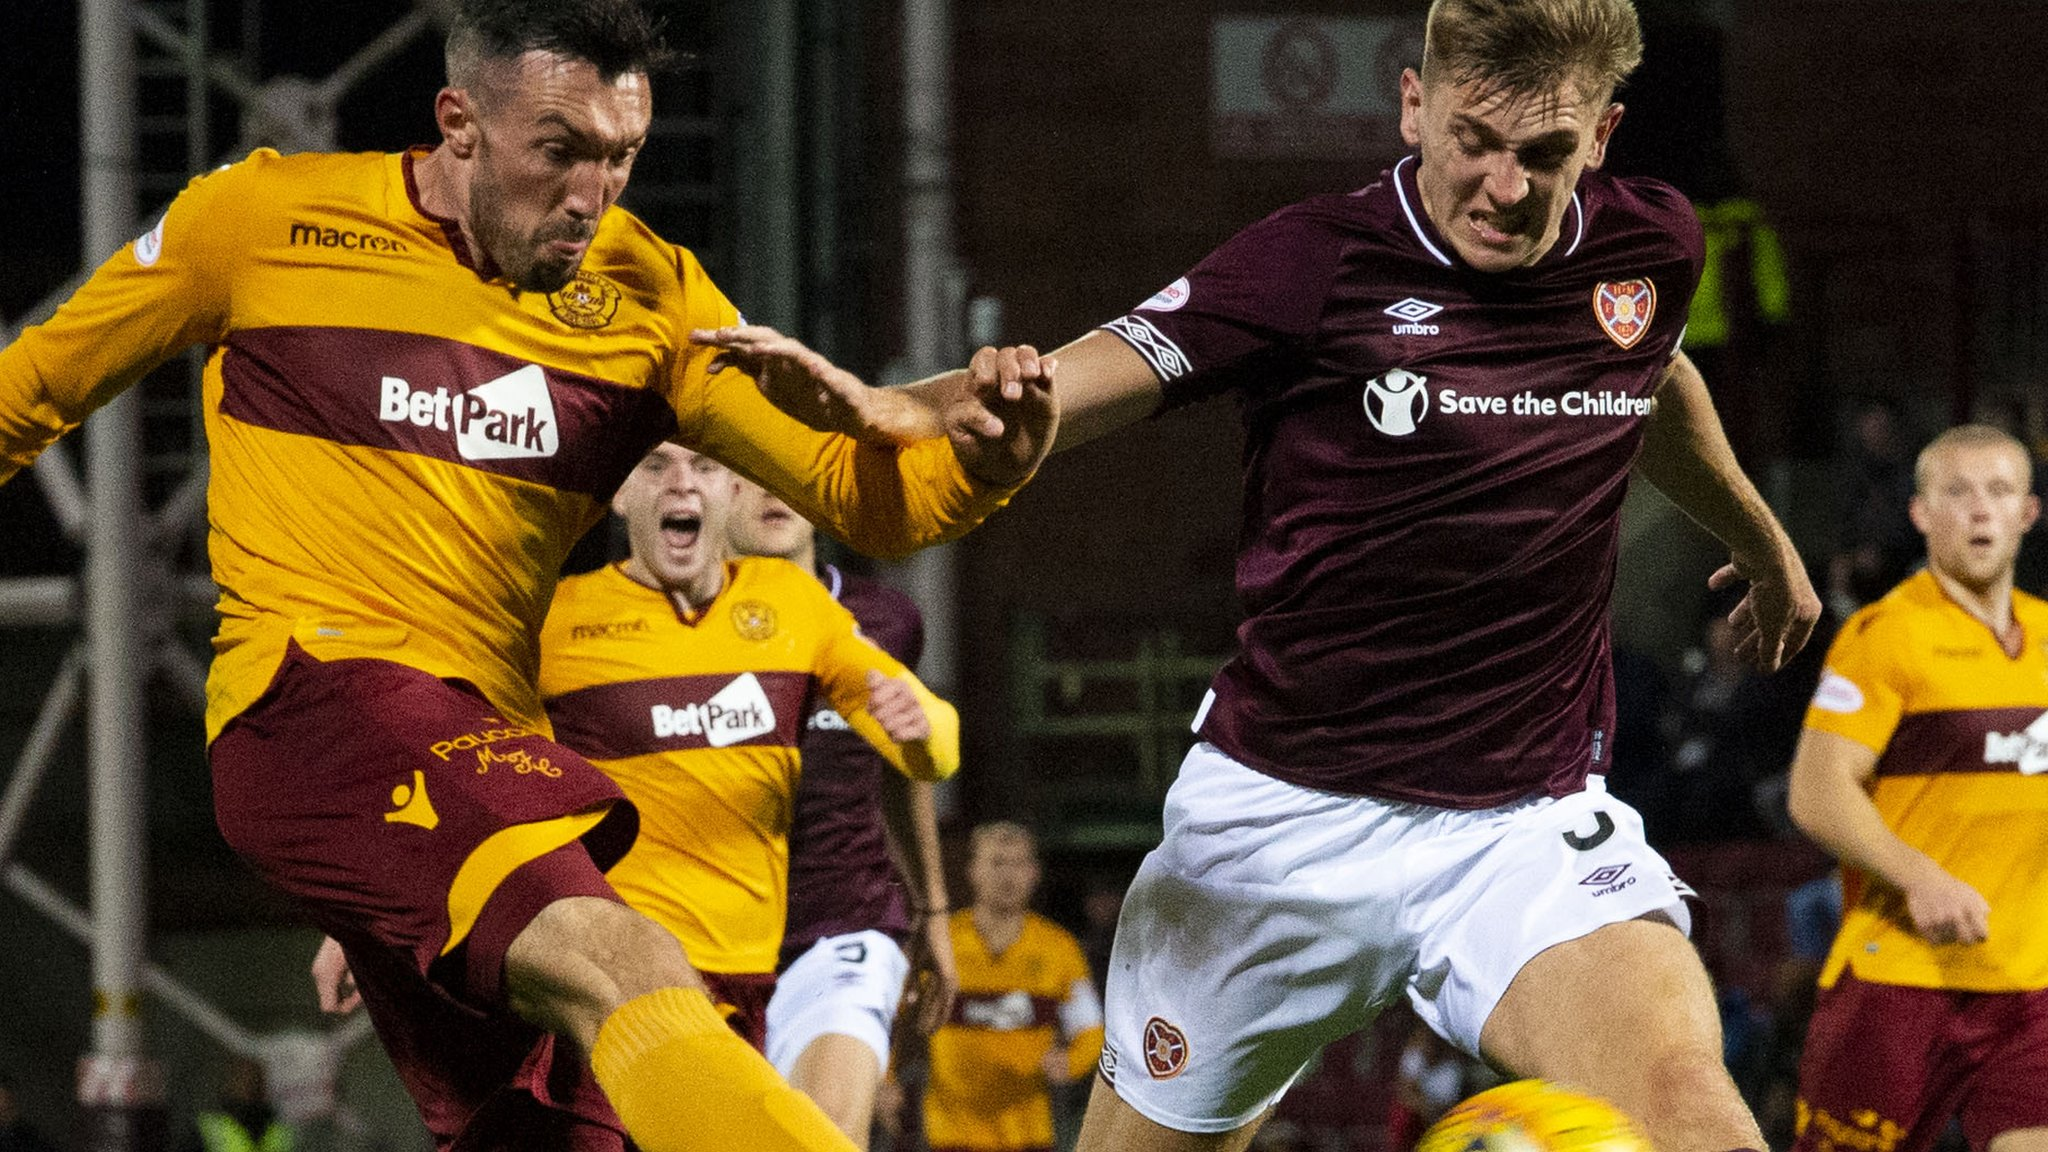 Heart of Midlothian v Motherwell